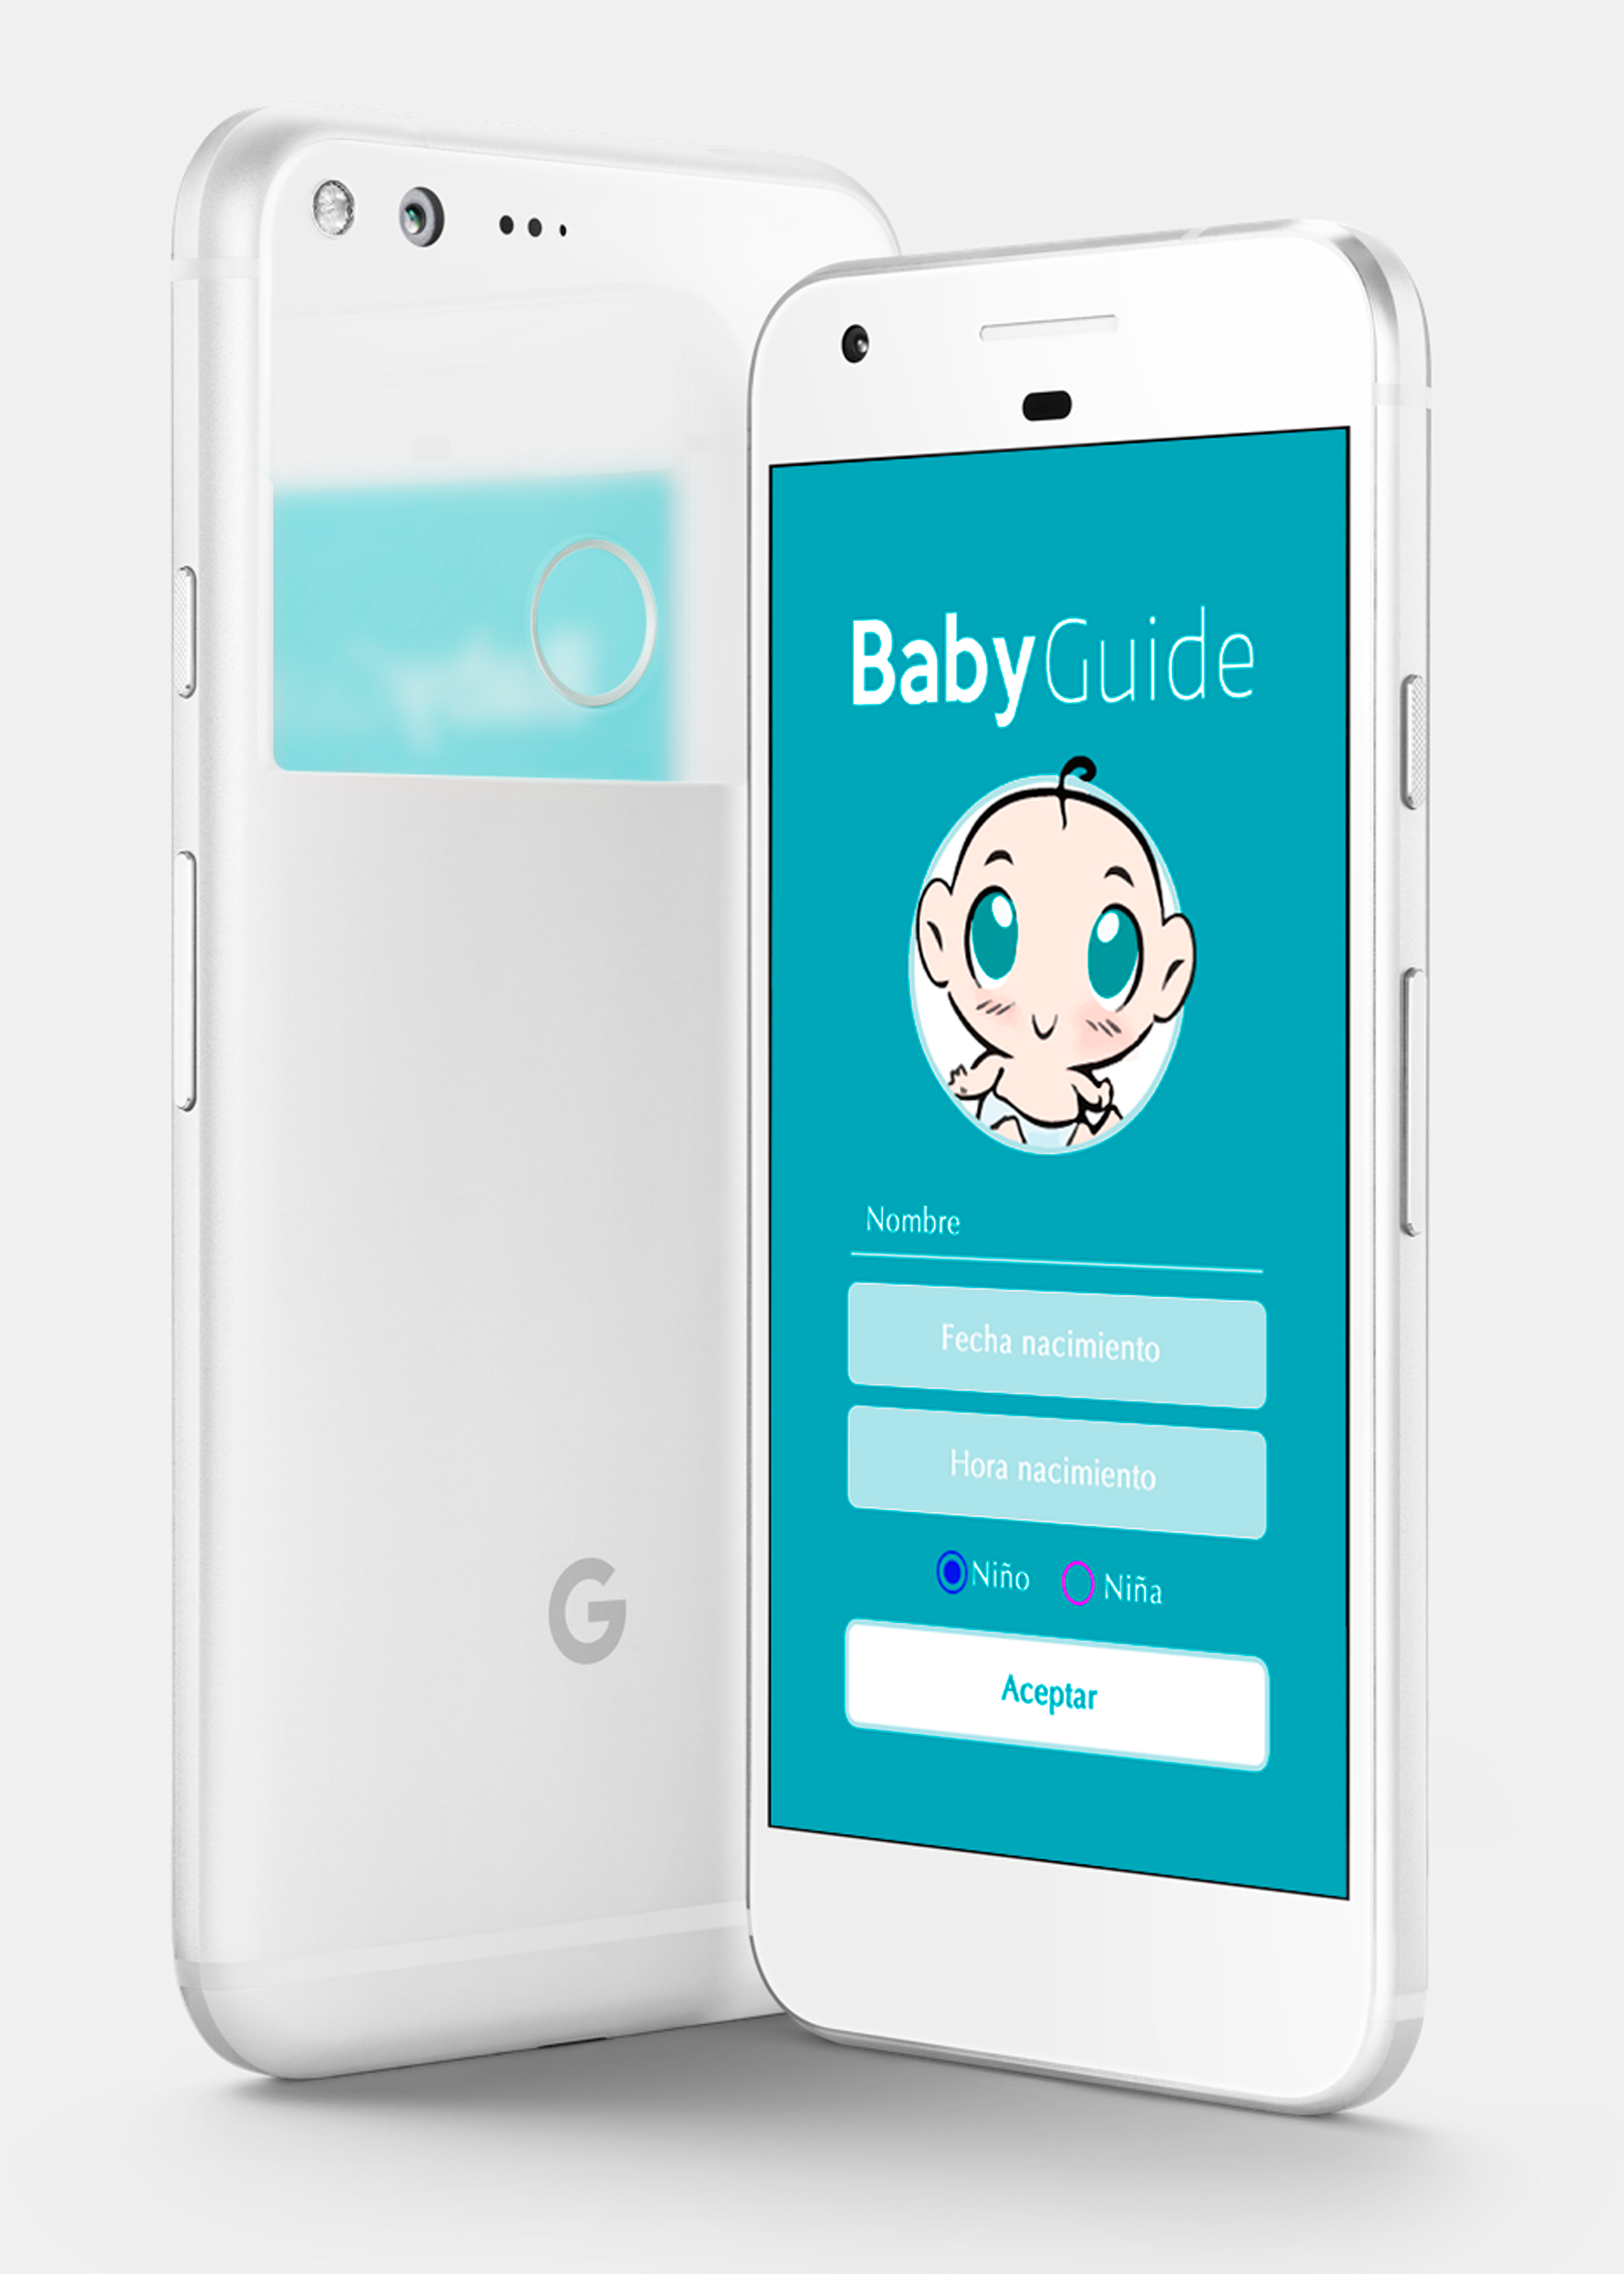 baby guide screen - Baby Guide App